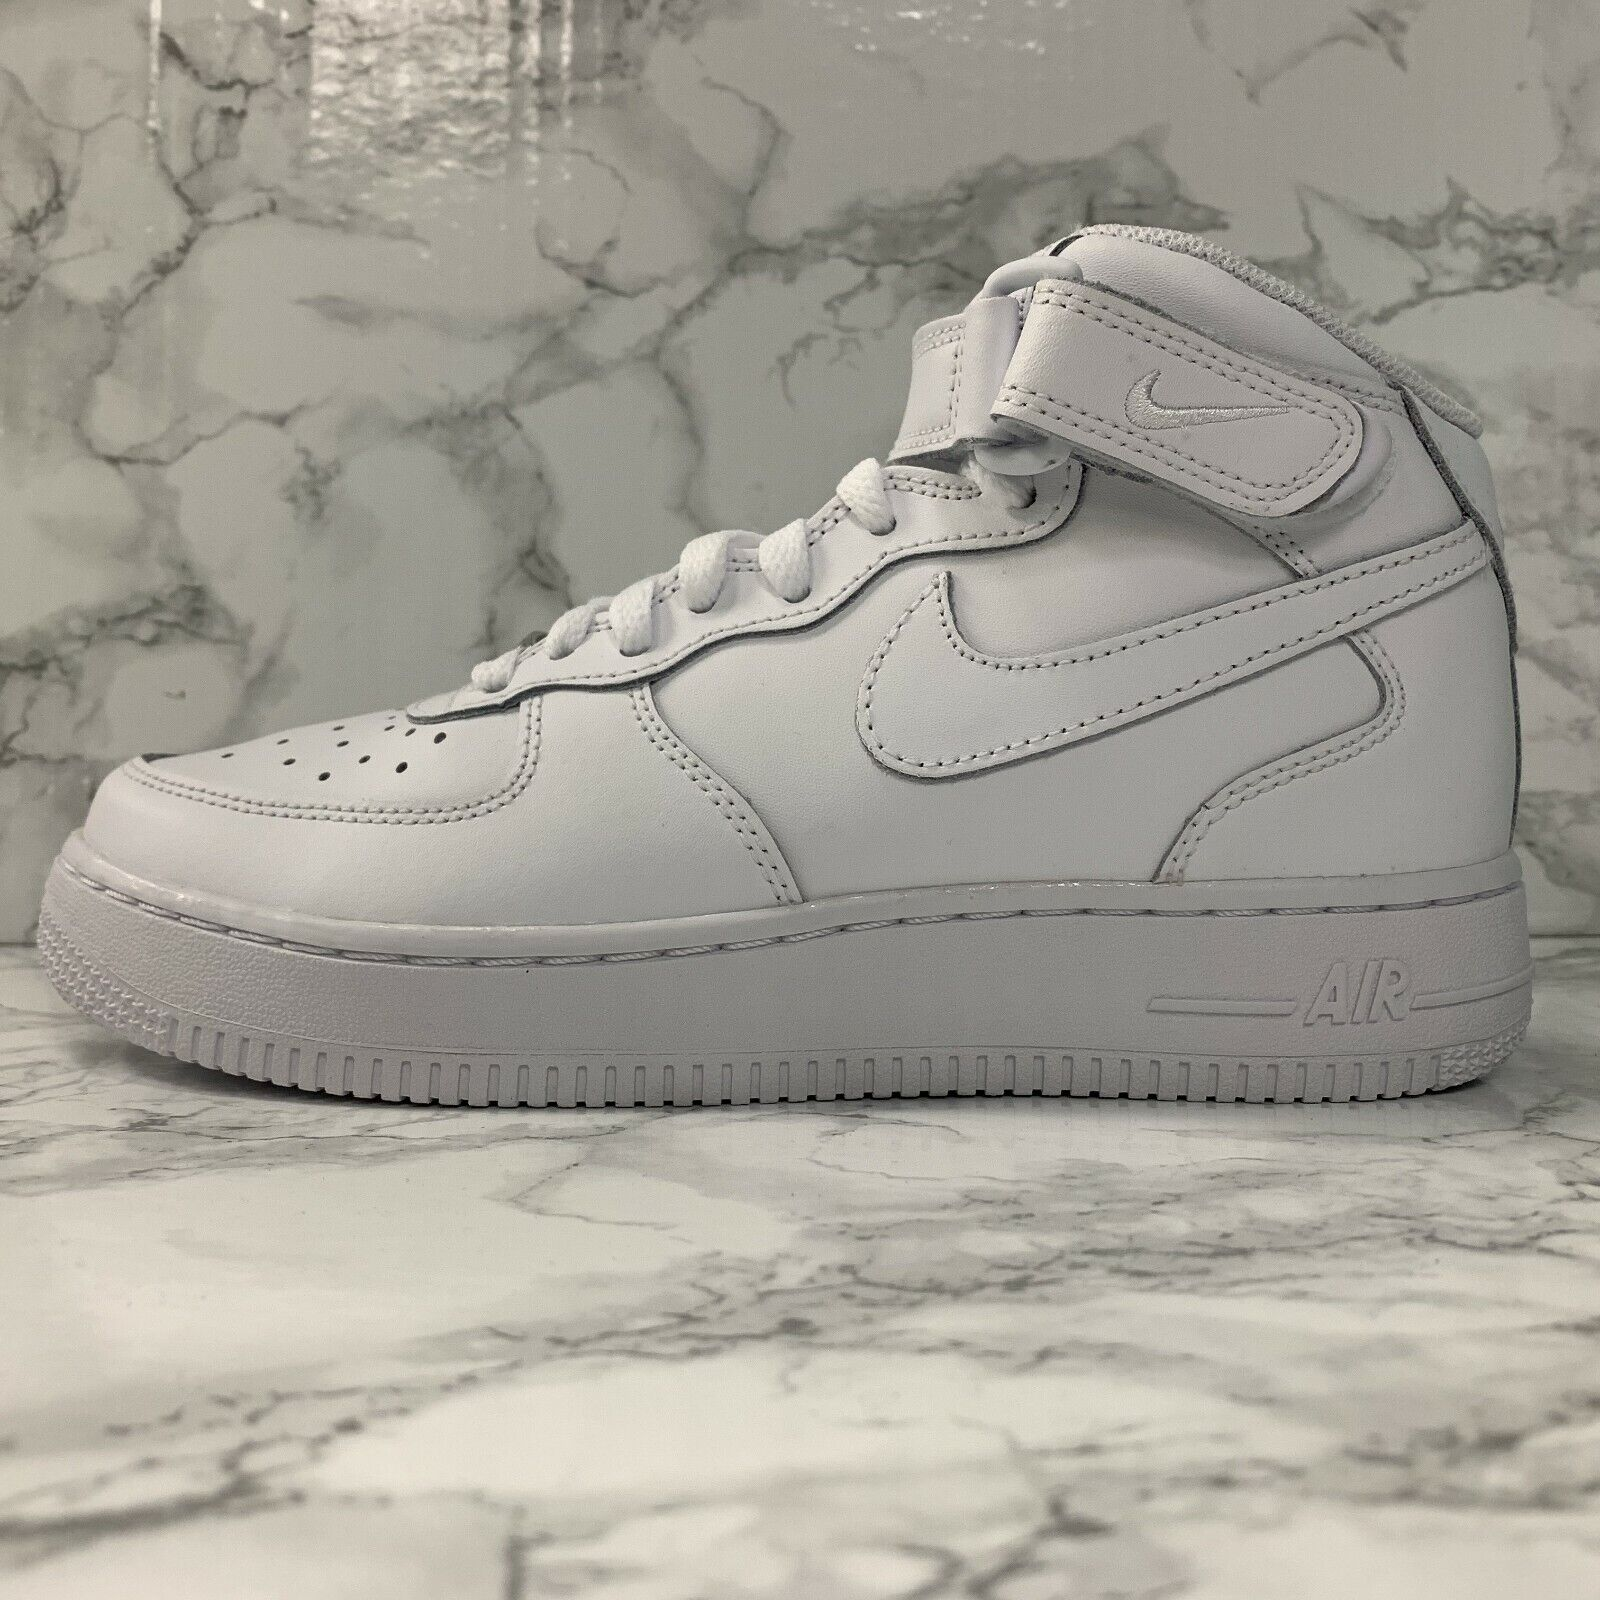 NIKE AIR FORCE ONE 1 MID GS 314195 113 WHITE YOUTH WOMEN SHOES